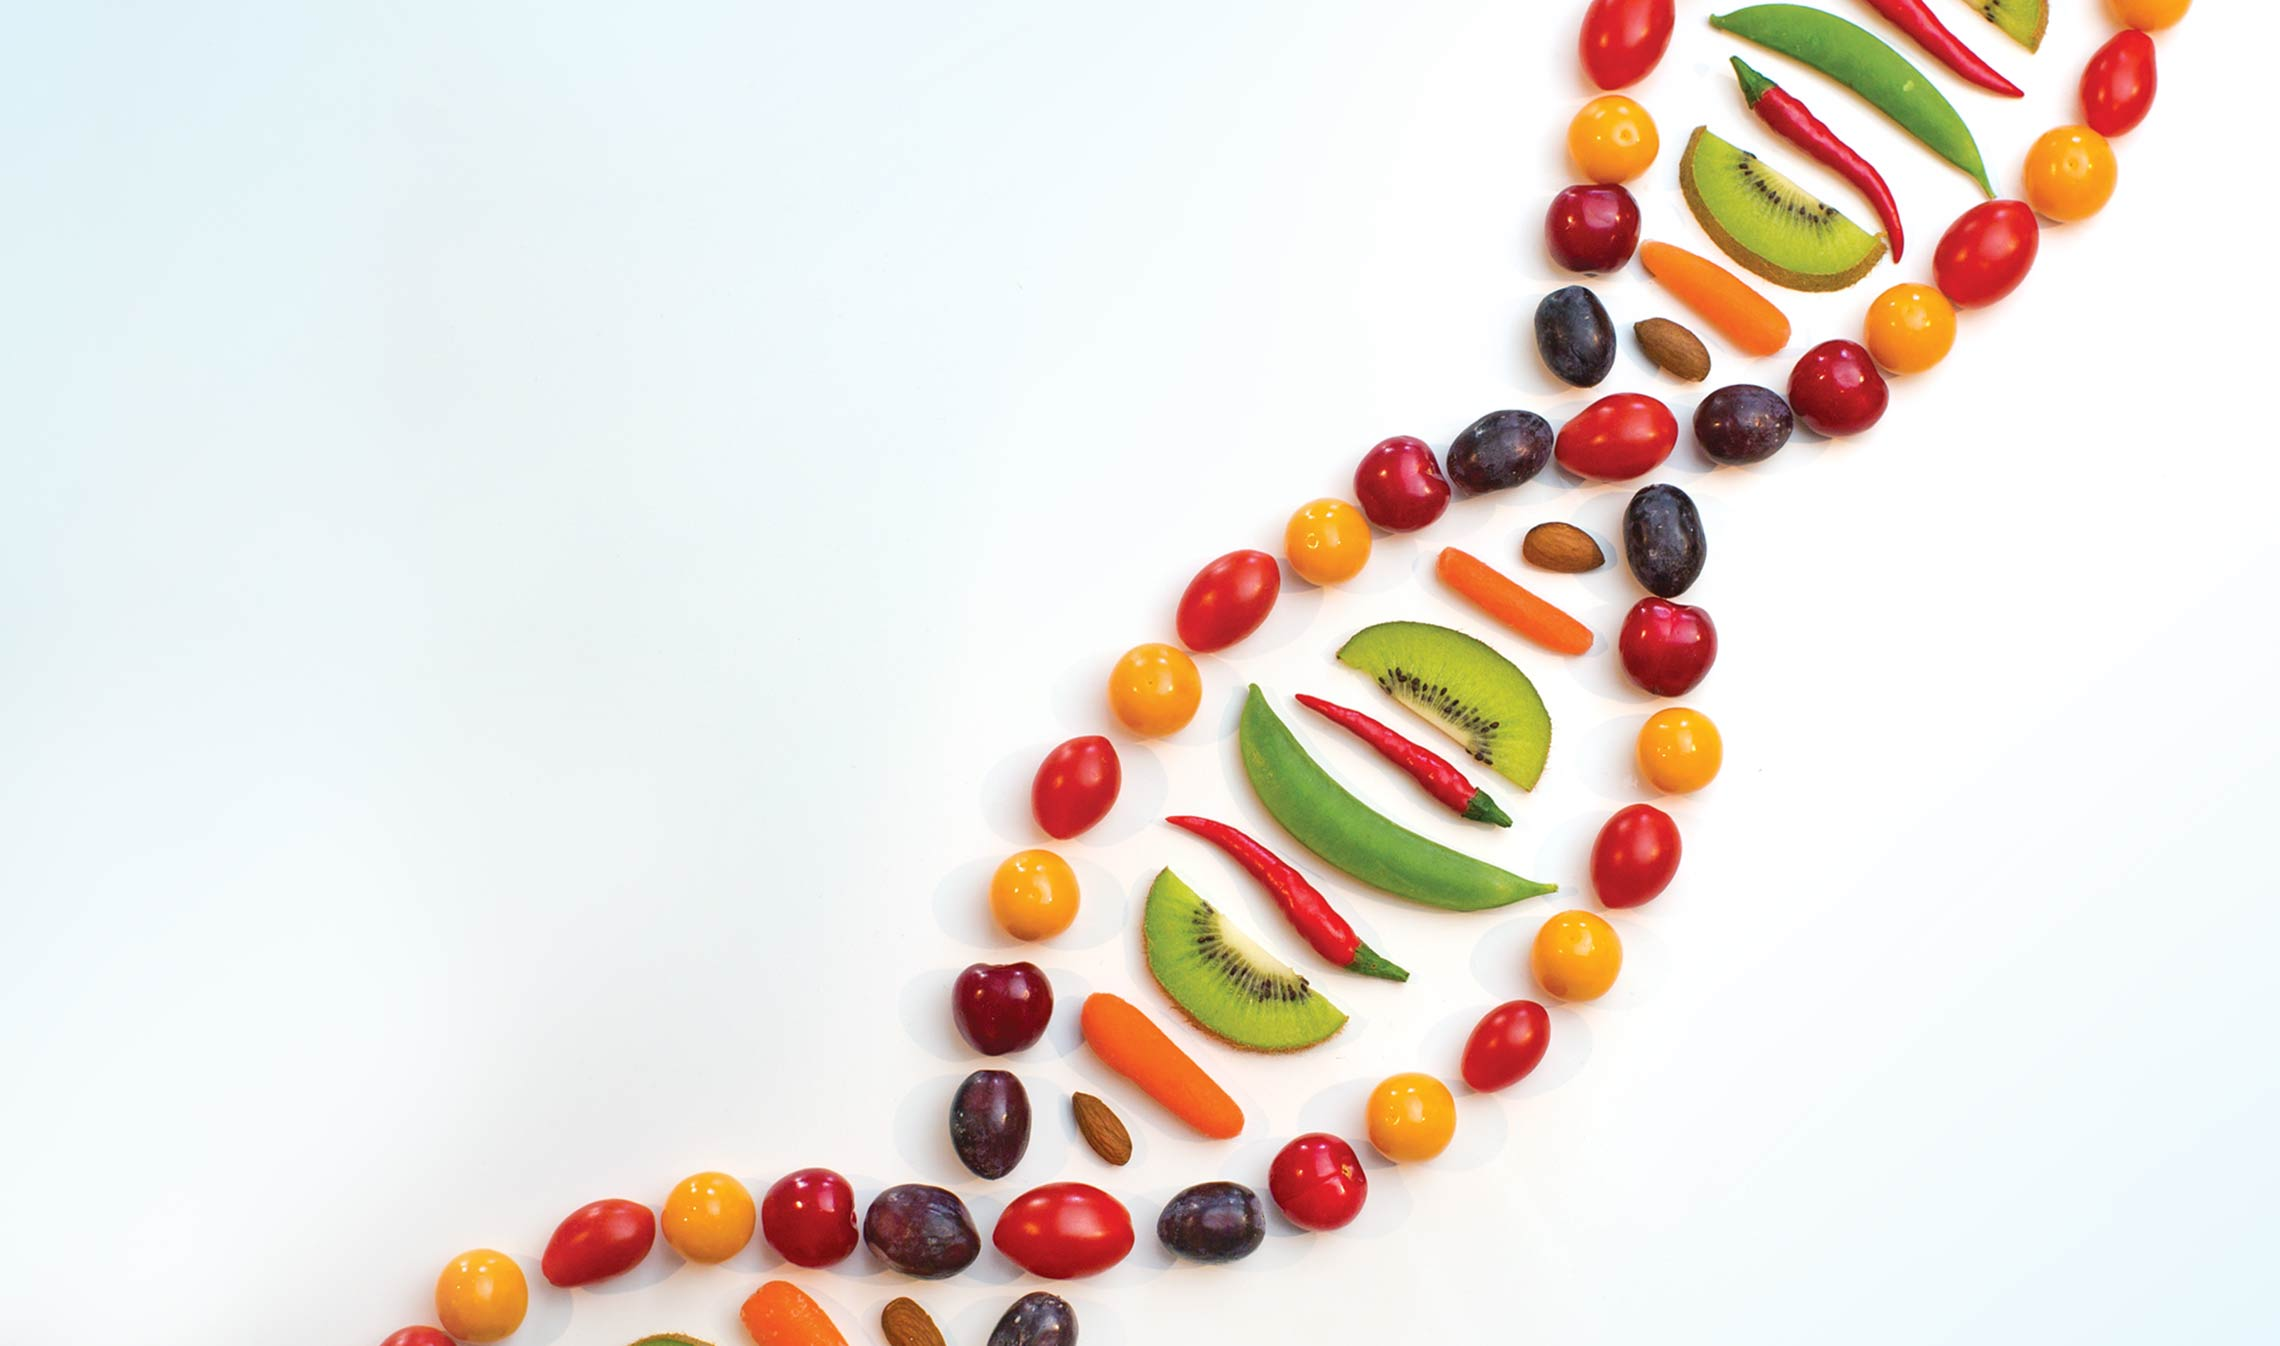 SHOULD YOUR DNA DETERMINE WHAT'S FOR DINNER?